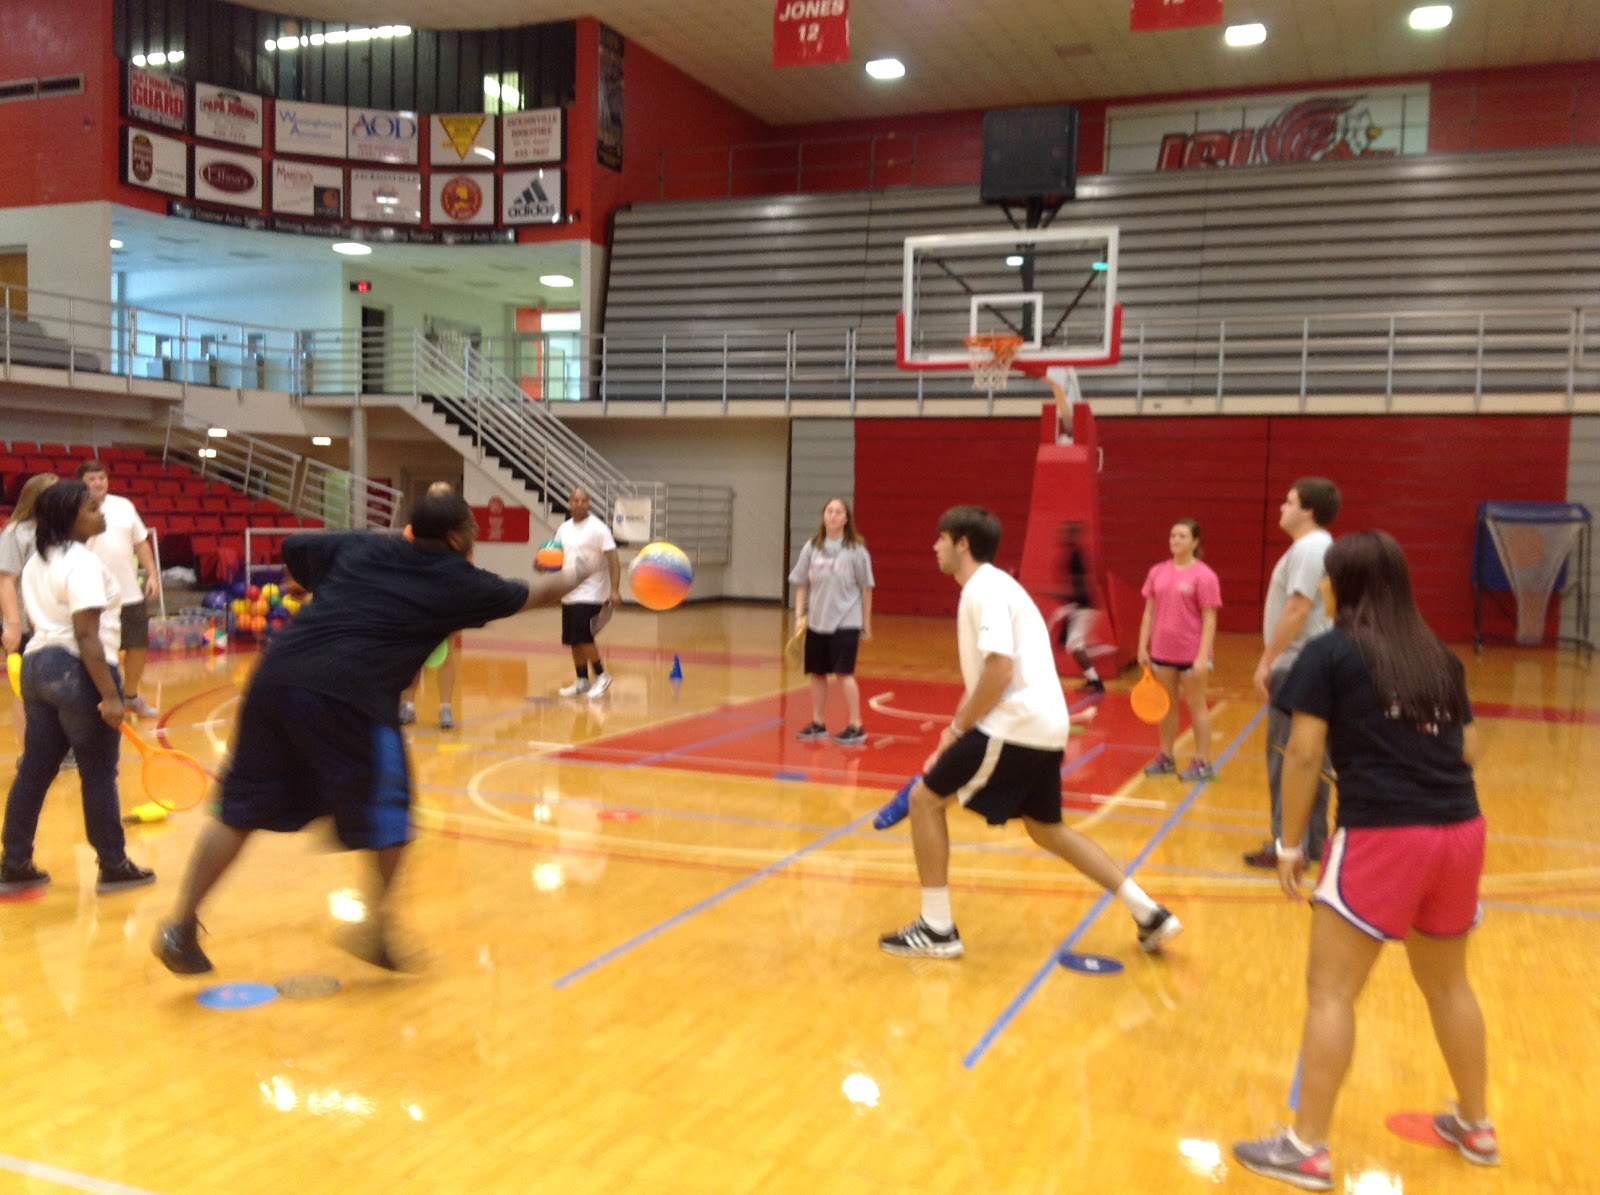 Jsu Physical Education D The Learning Continues